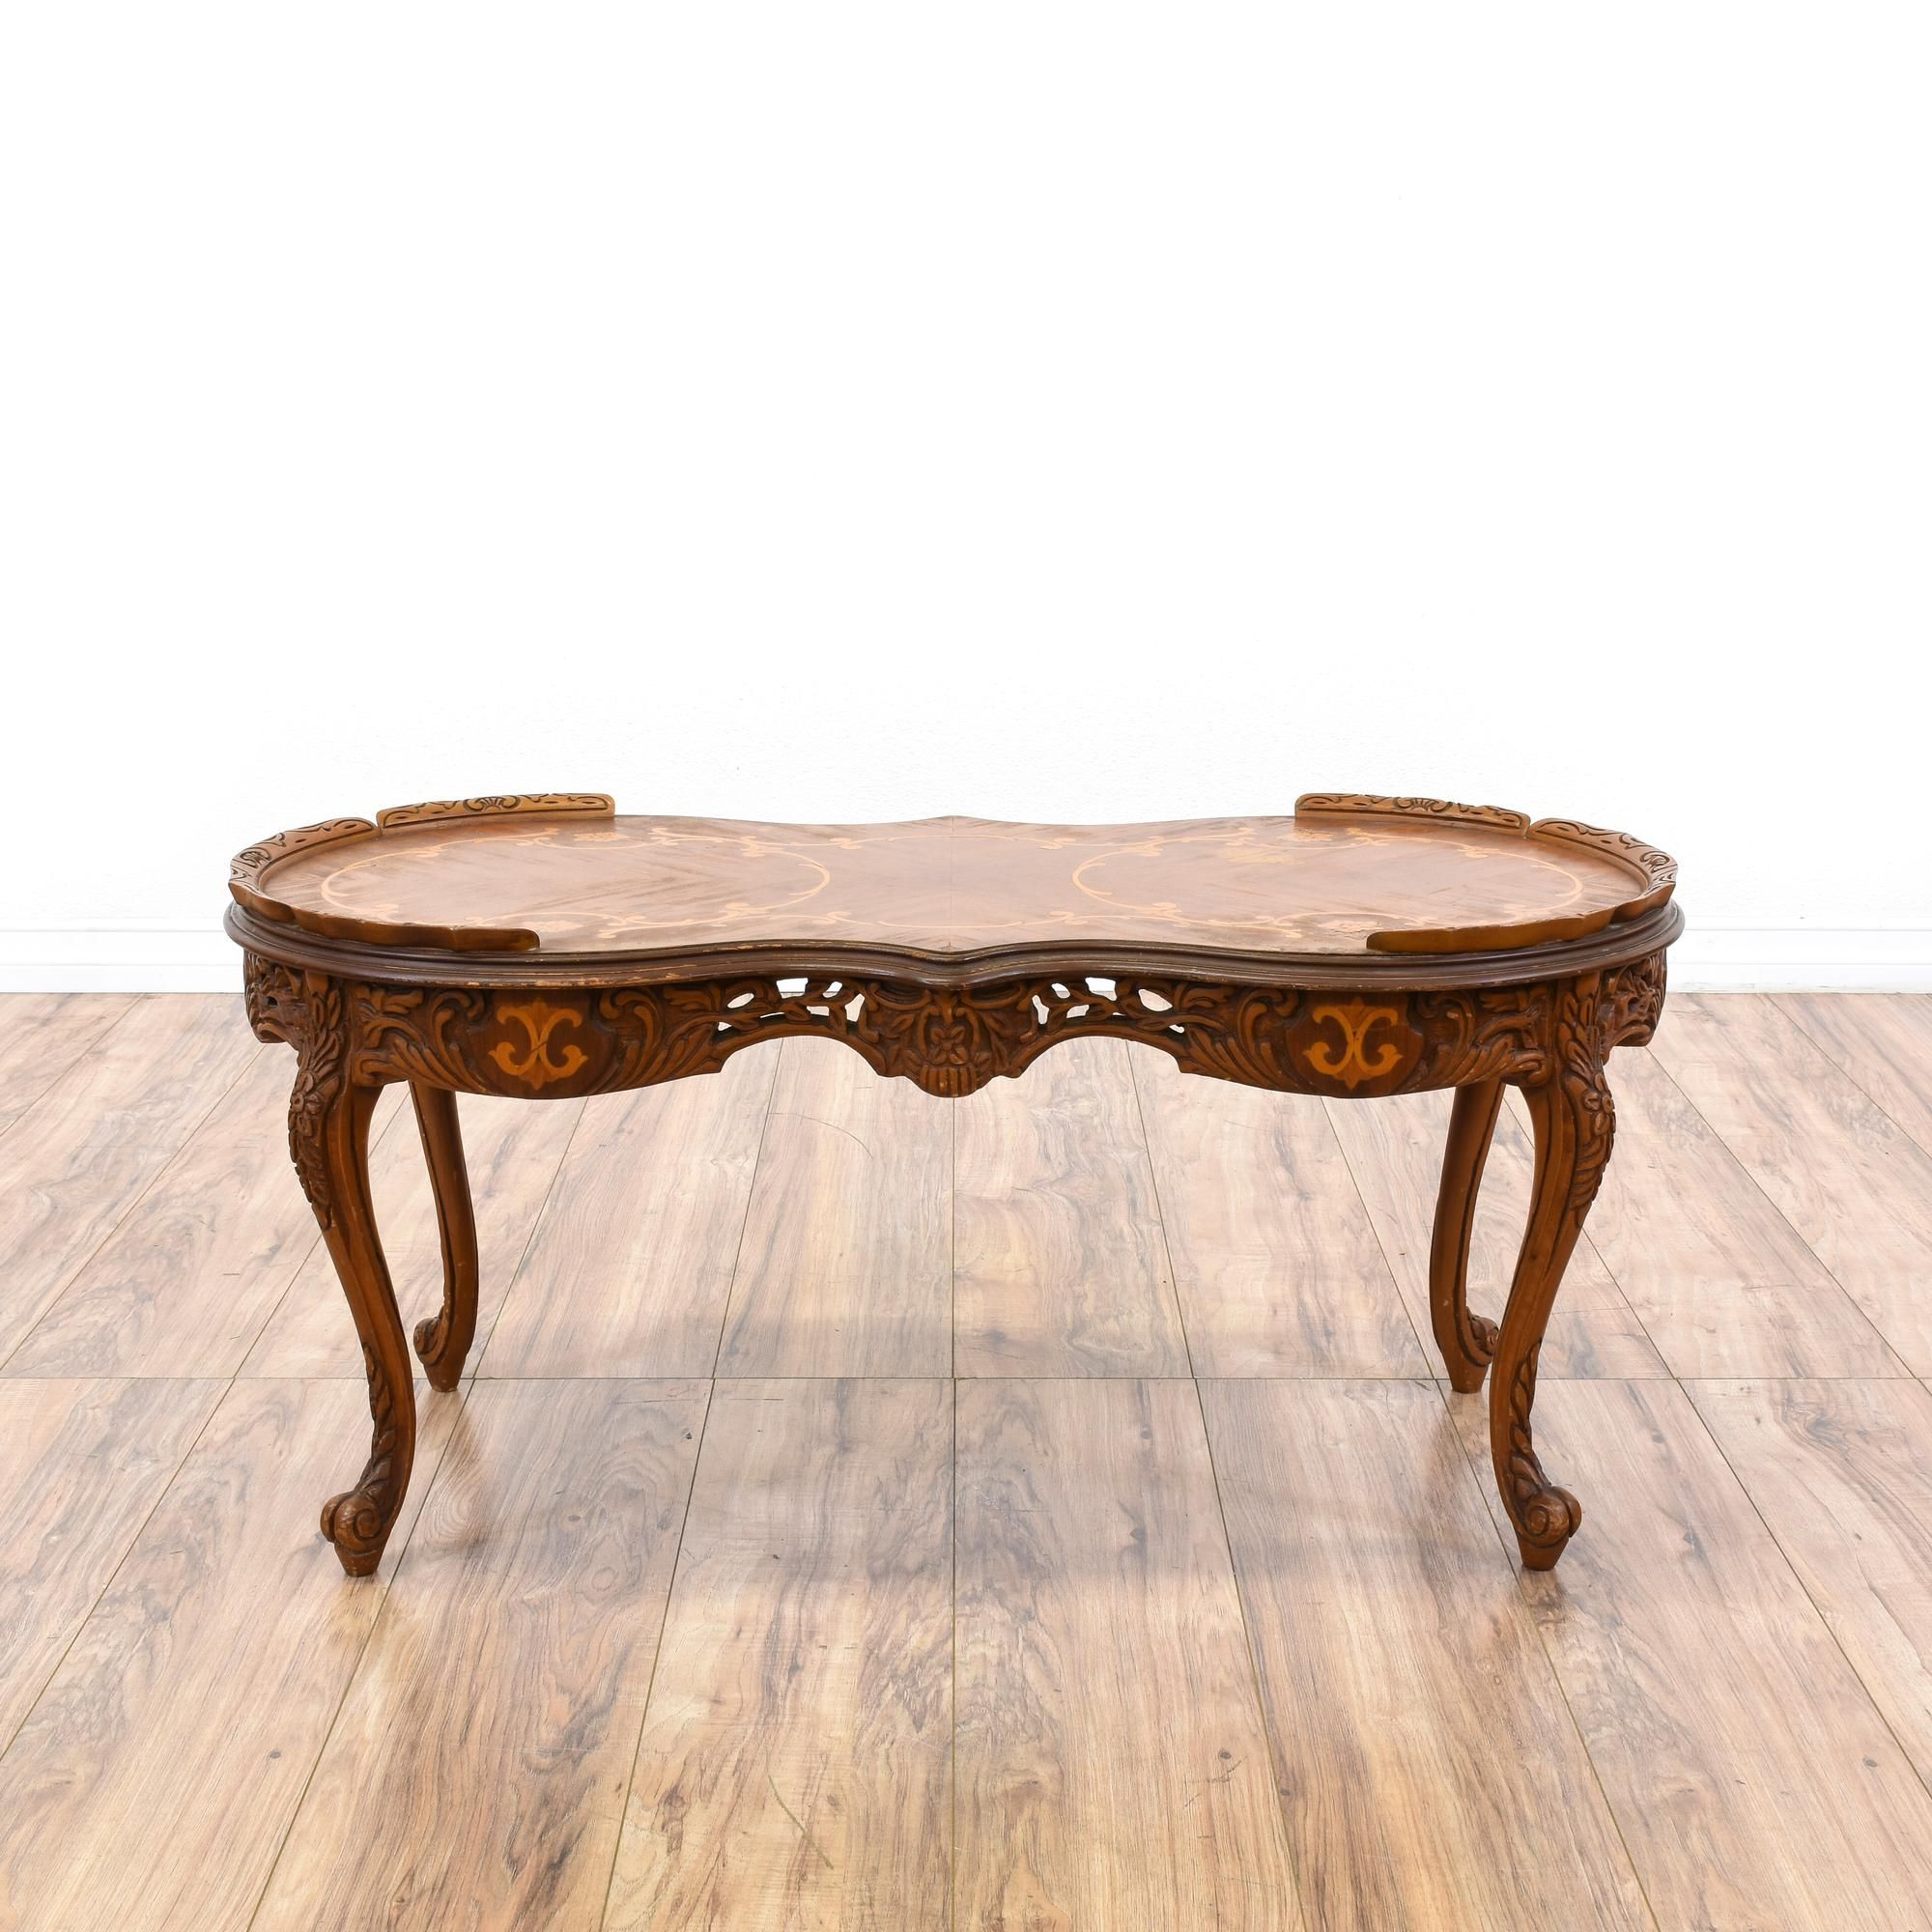 This Victorian Coffee Table Is Featured In A Solid Wood